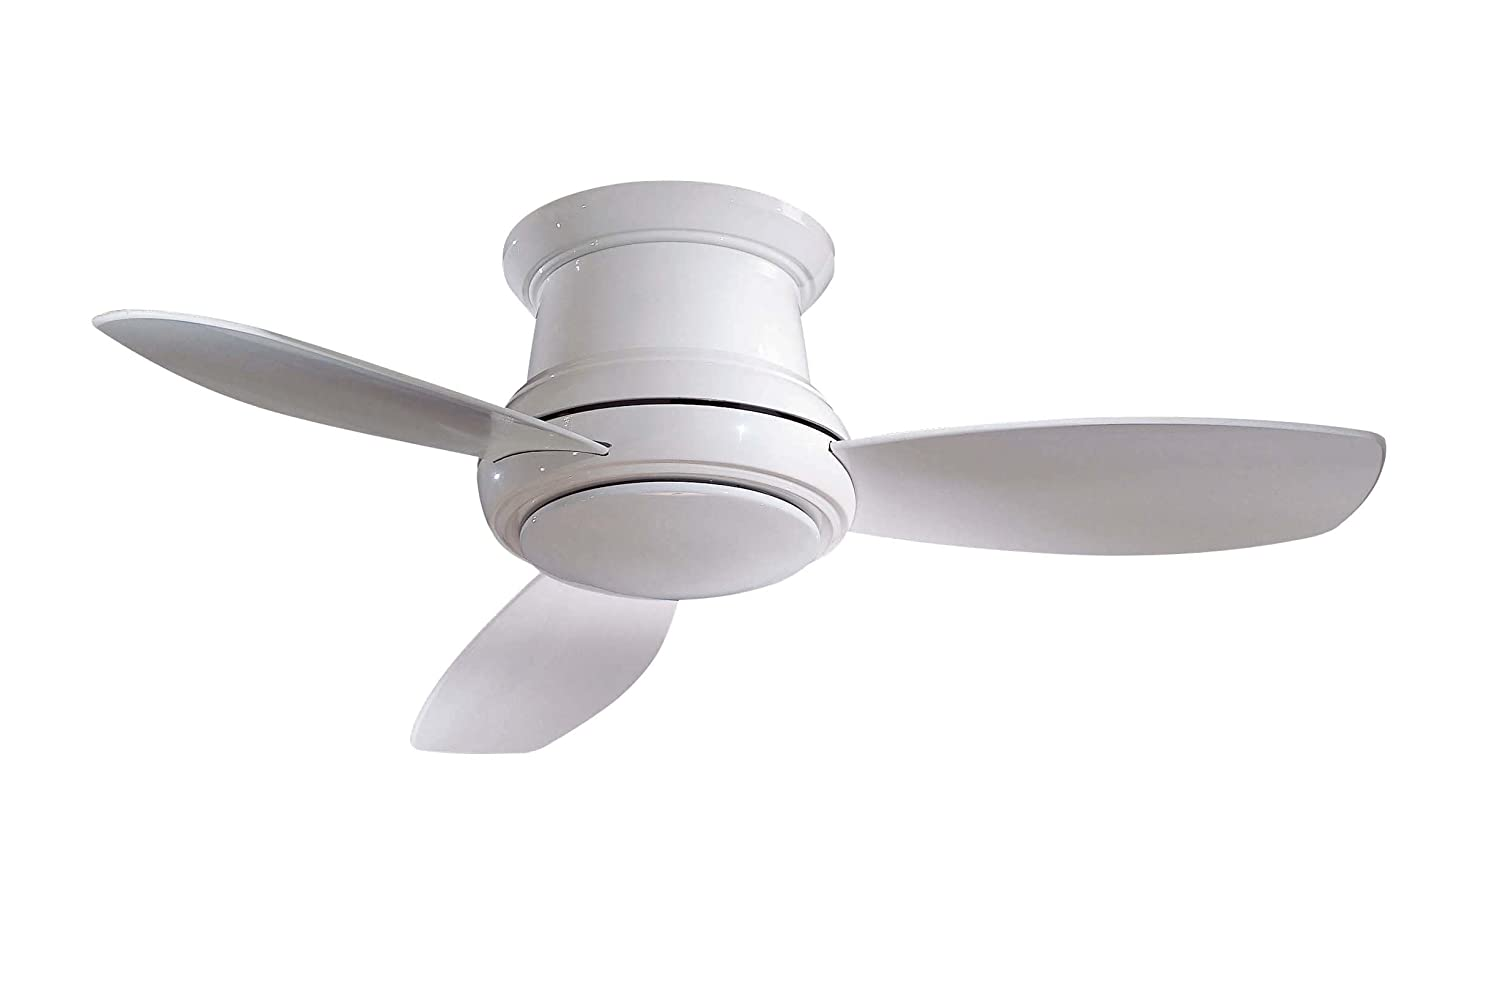 Minka-Aire F518-WH 44-inch Concept II Flush Mount Ceiling Fan, White with White Blades